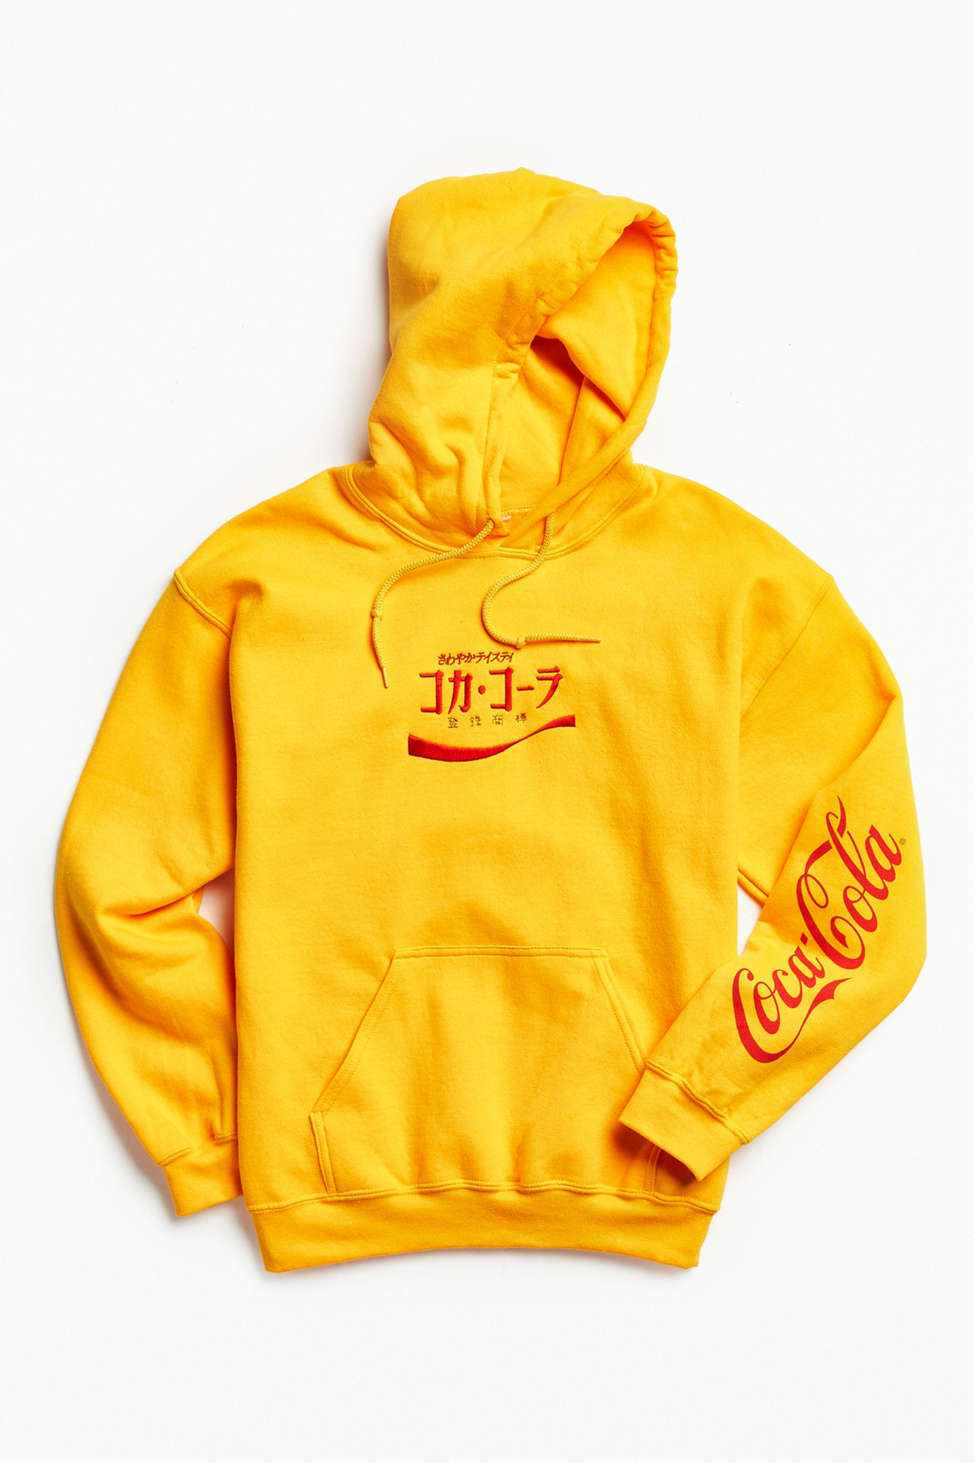 Coca Cola Embroidered Hoodie Sweatshirt Urban Outfitters